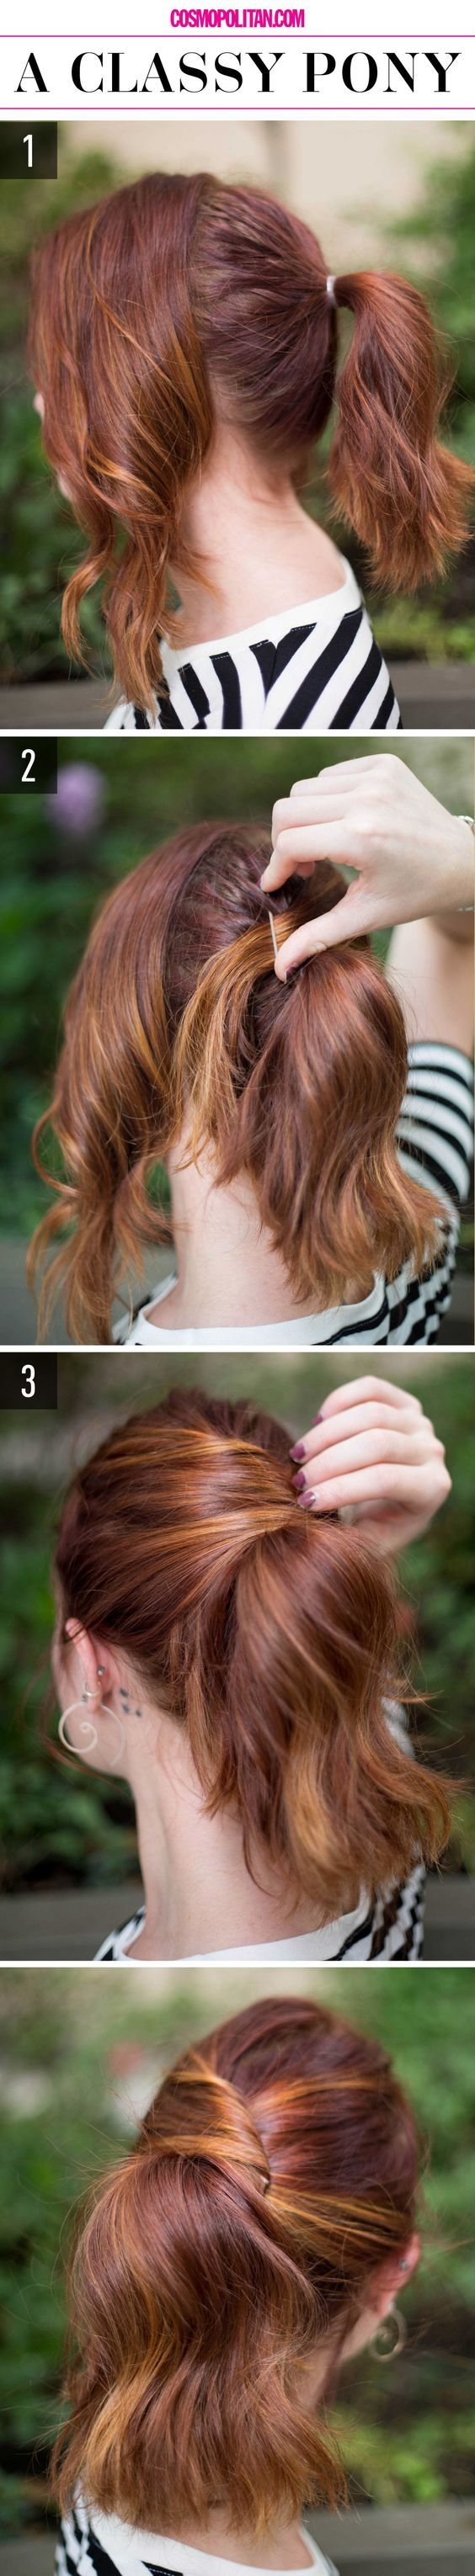 supereasy hairstyles for lazy girls who canut even third hair